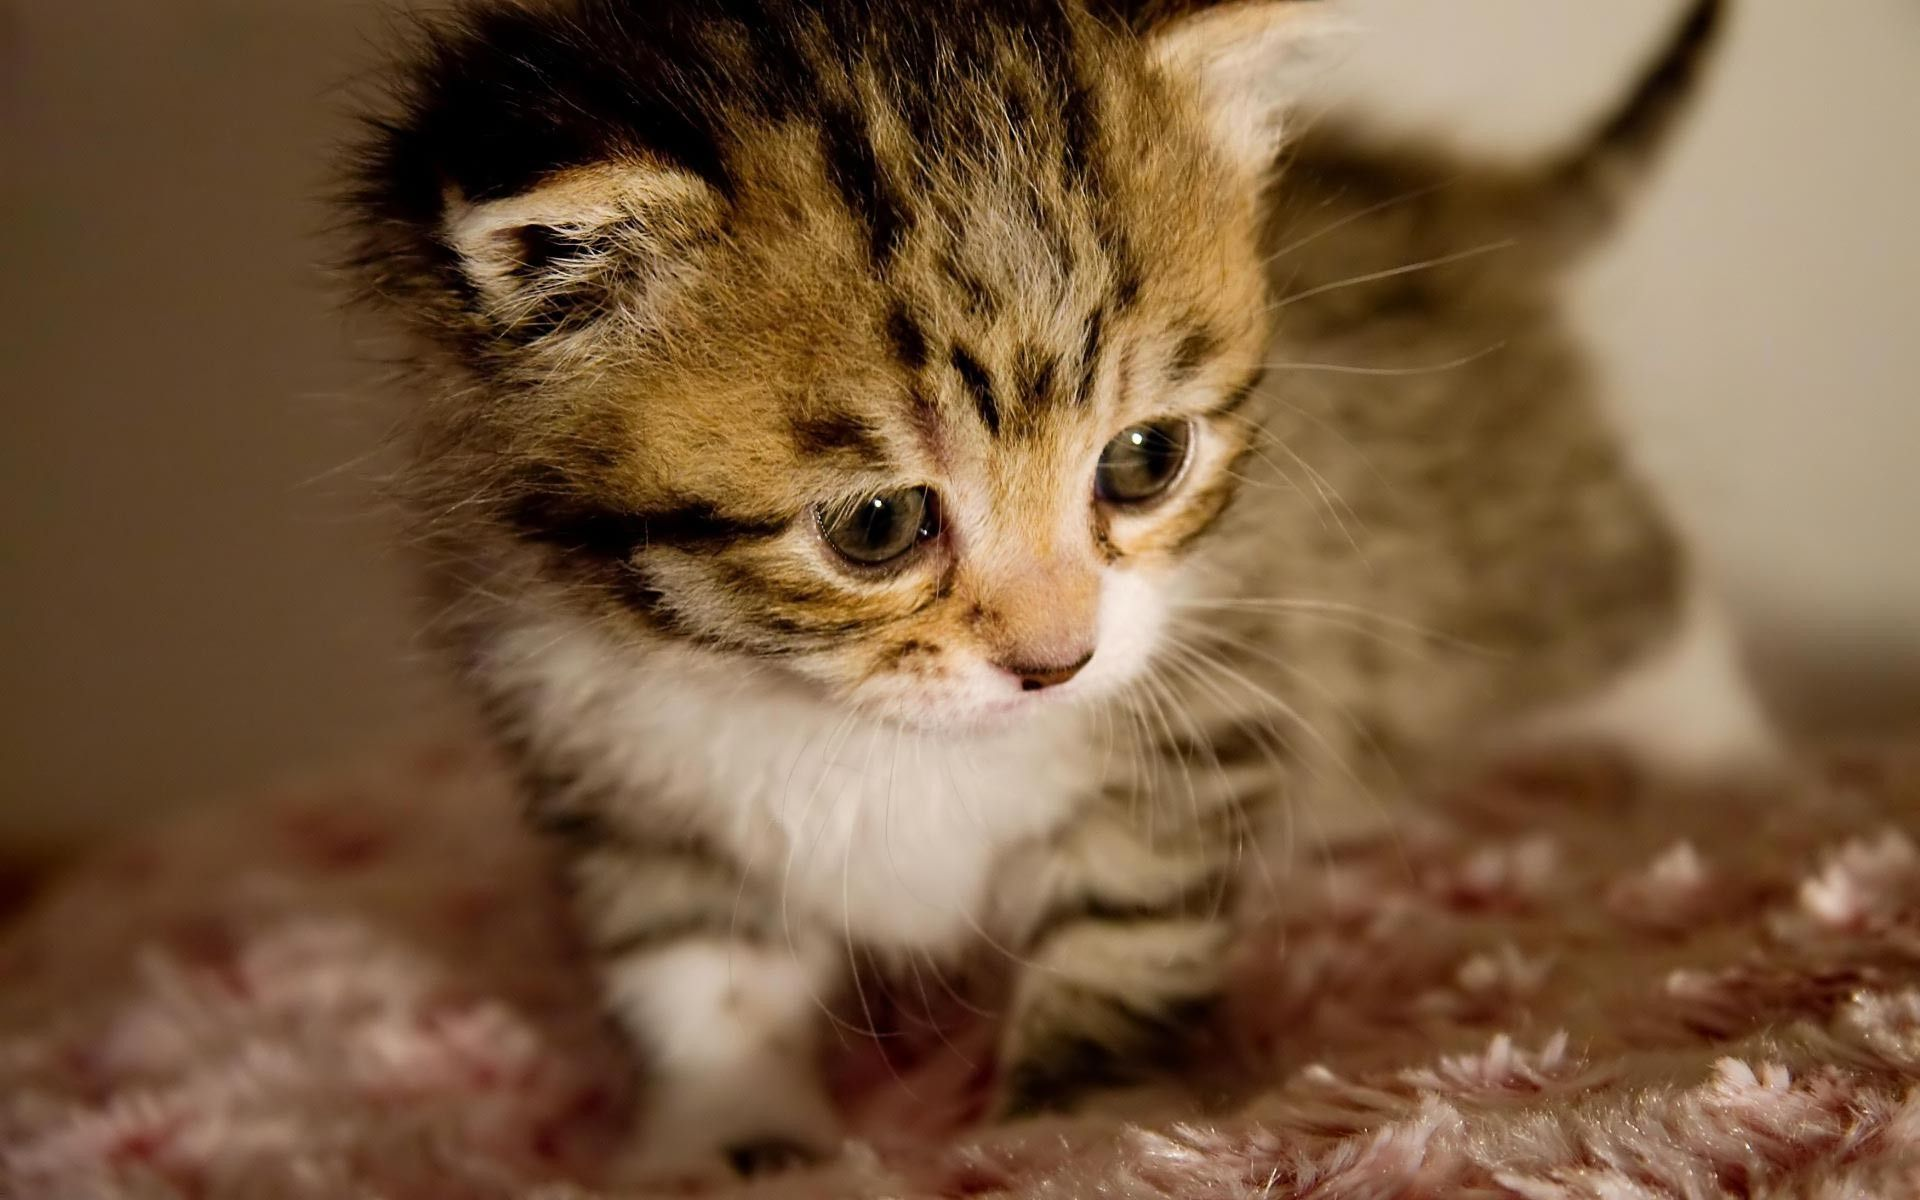 Cute Baby Kittens pictures Cute Baby Kittens Ztmwnzk